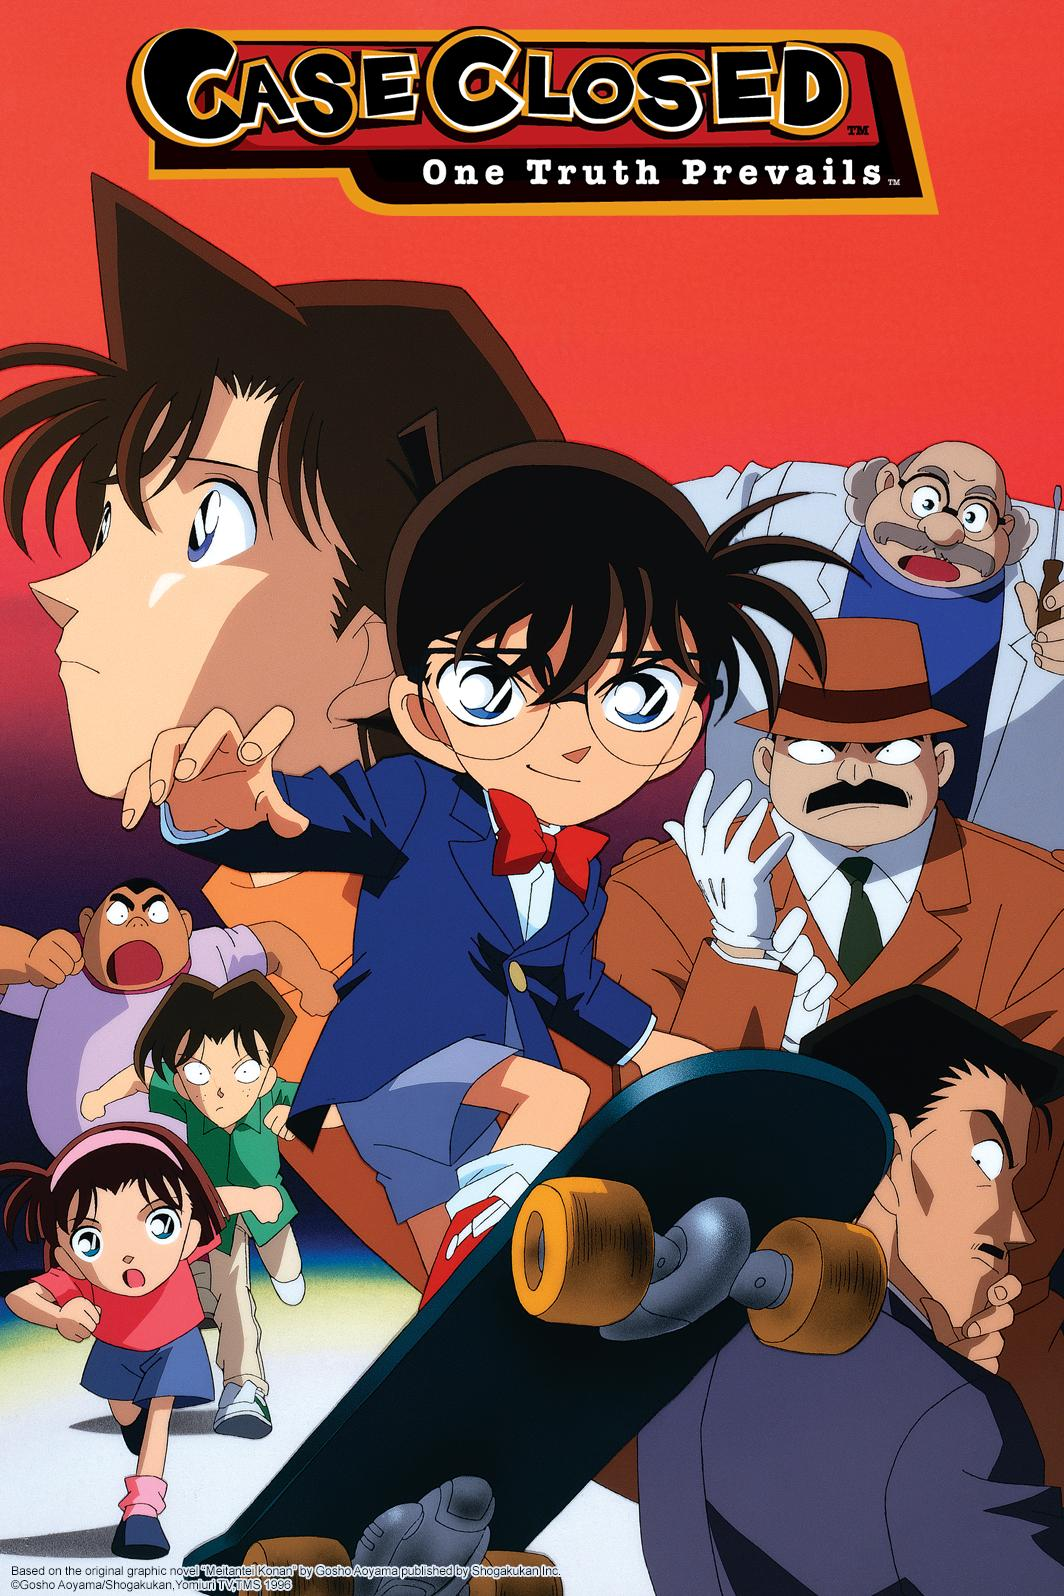 Case Closed - Watch on Crunchyroll